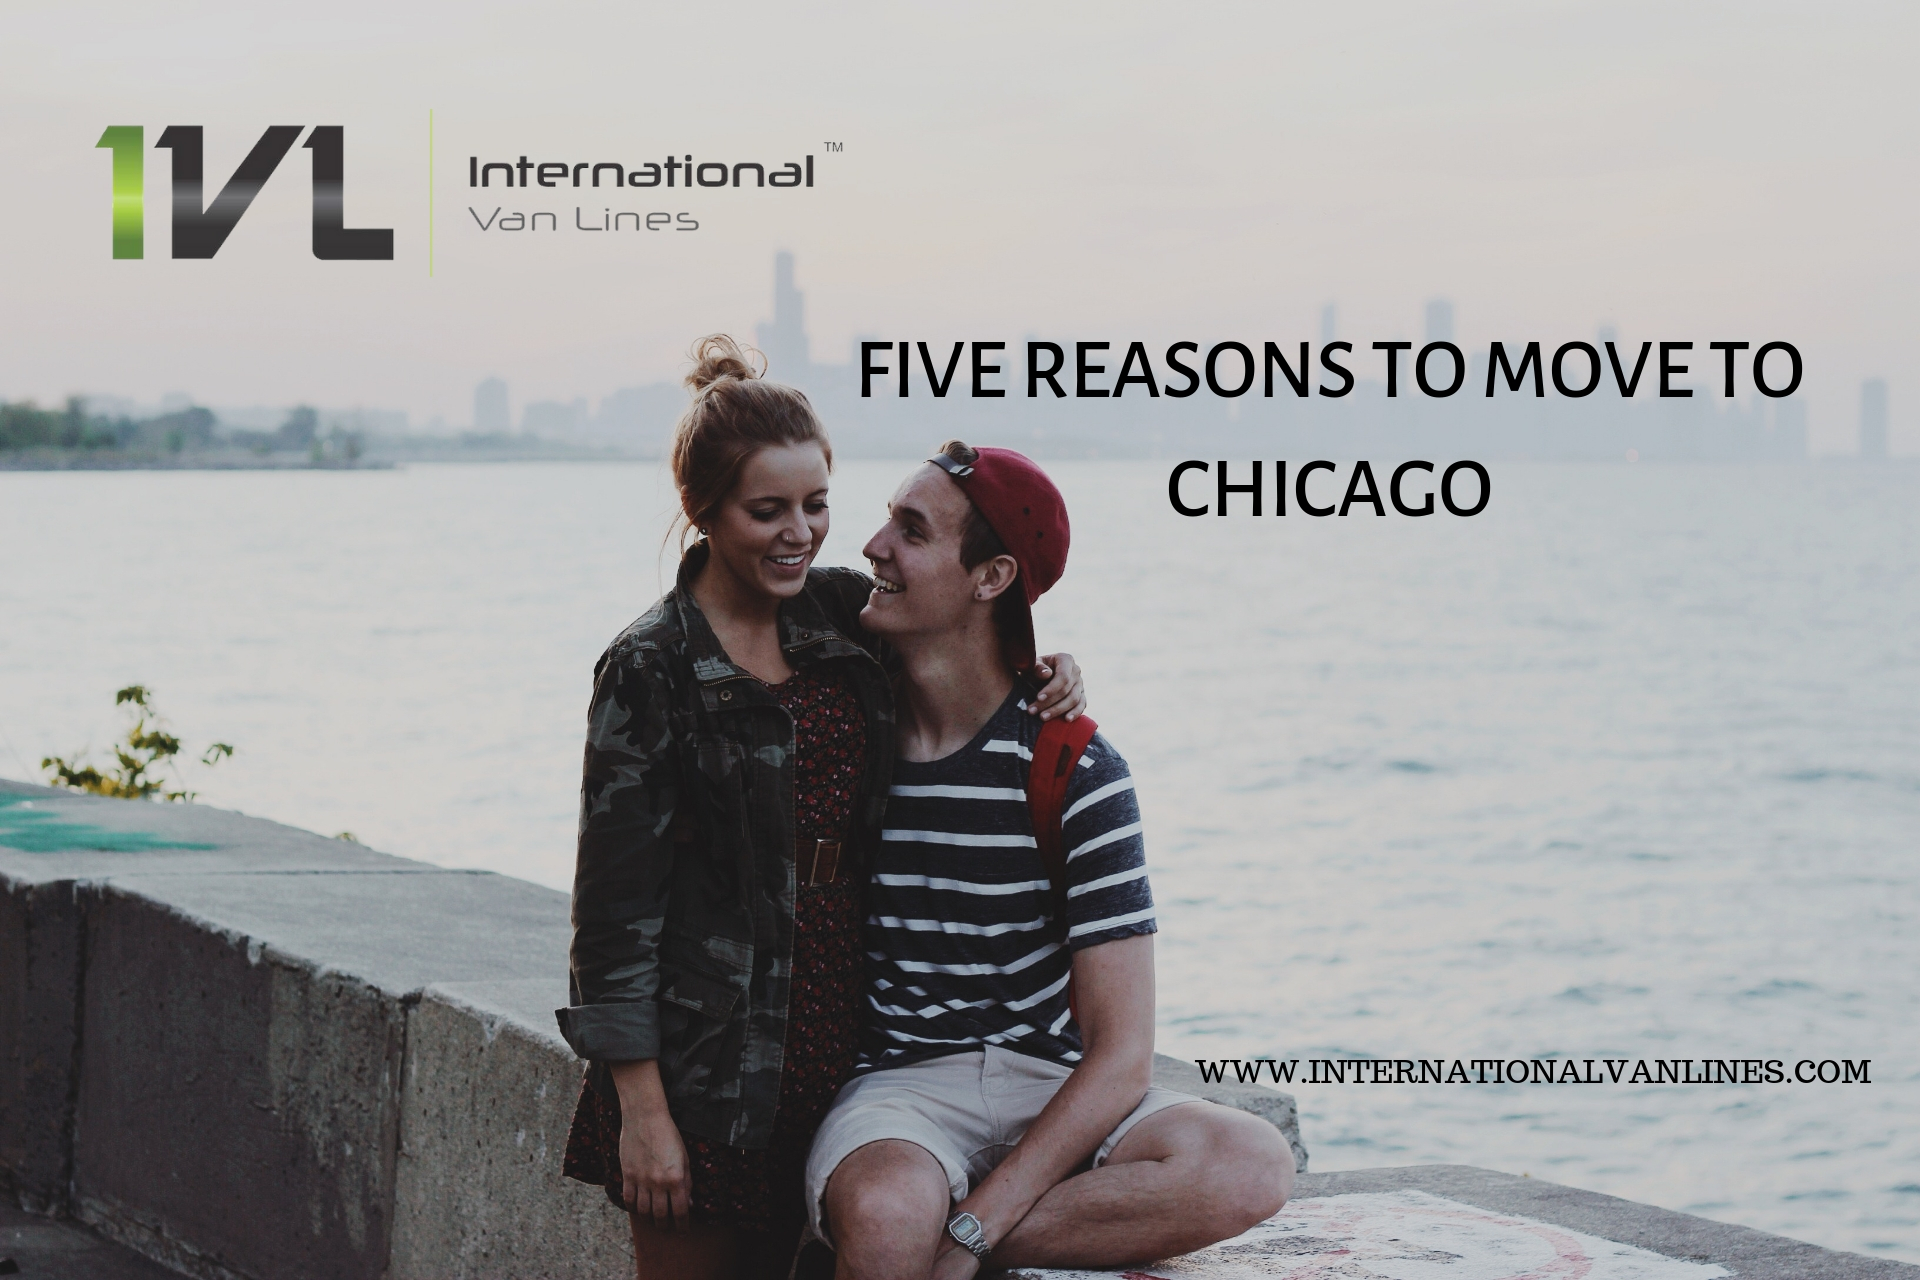 Five reasons to move to Chicago